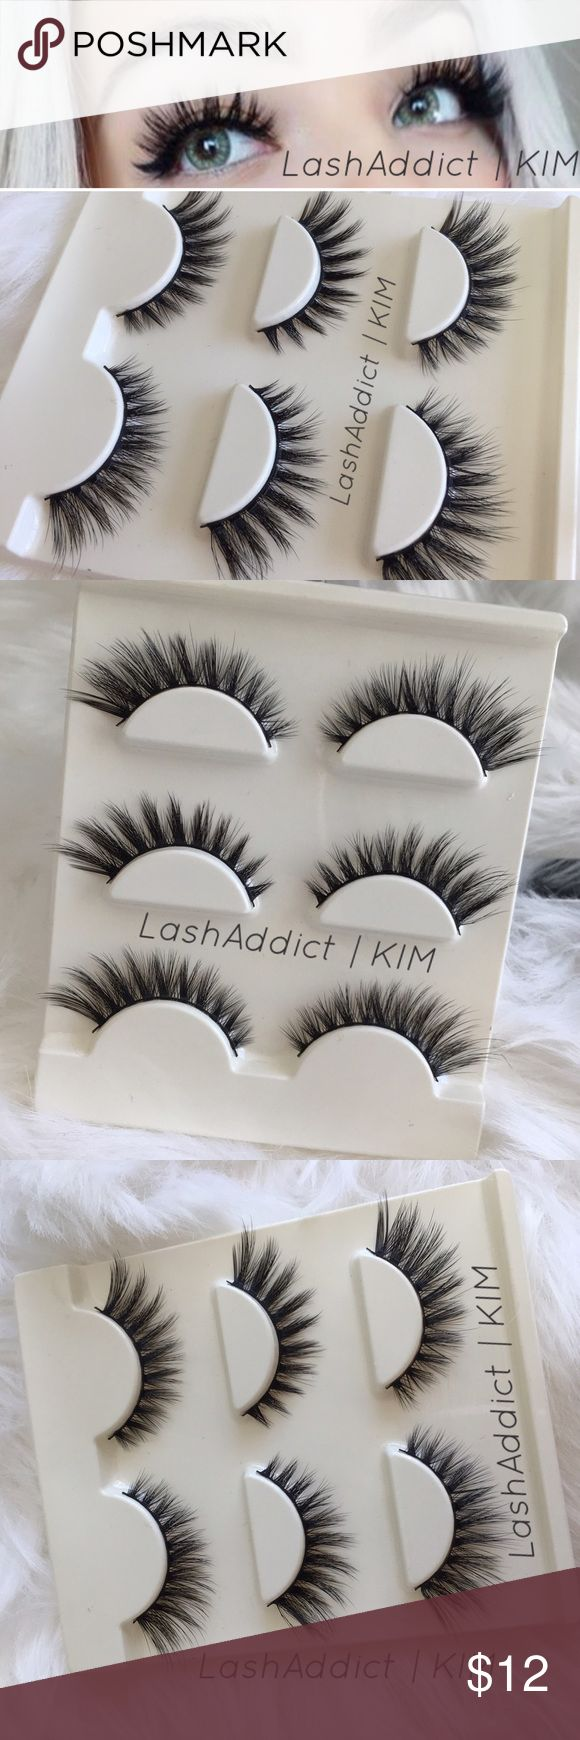 3 Pairs Mink Lashes 3D Eyelashes Lilly Velour New ✨ SUPER DEAL ✨  @Lash Addict/Kim  ❤️PRICE IS FIRM   Mink flutter wispies   •100% Real Mink Fur Strip Lashes •Handcrafted High Quality Lashes •Will last up to 25 applications, handle with care. •All pictures are mine @Lash Addict/Kim • 3 pair mink eyelashes lashes  No Glue / add on for $2 Makeup False Eyelashes